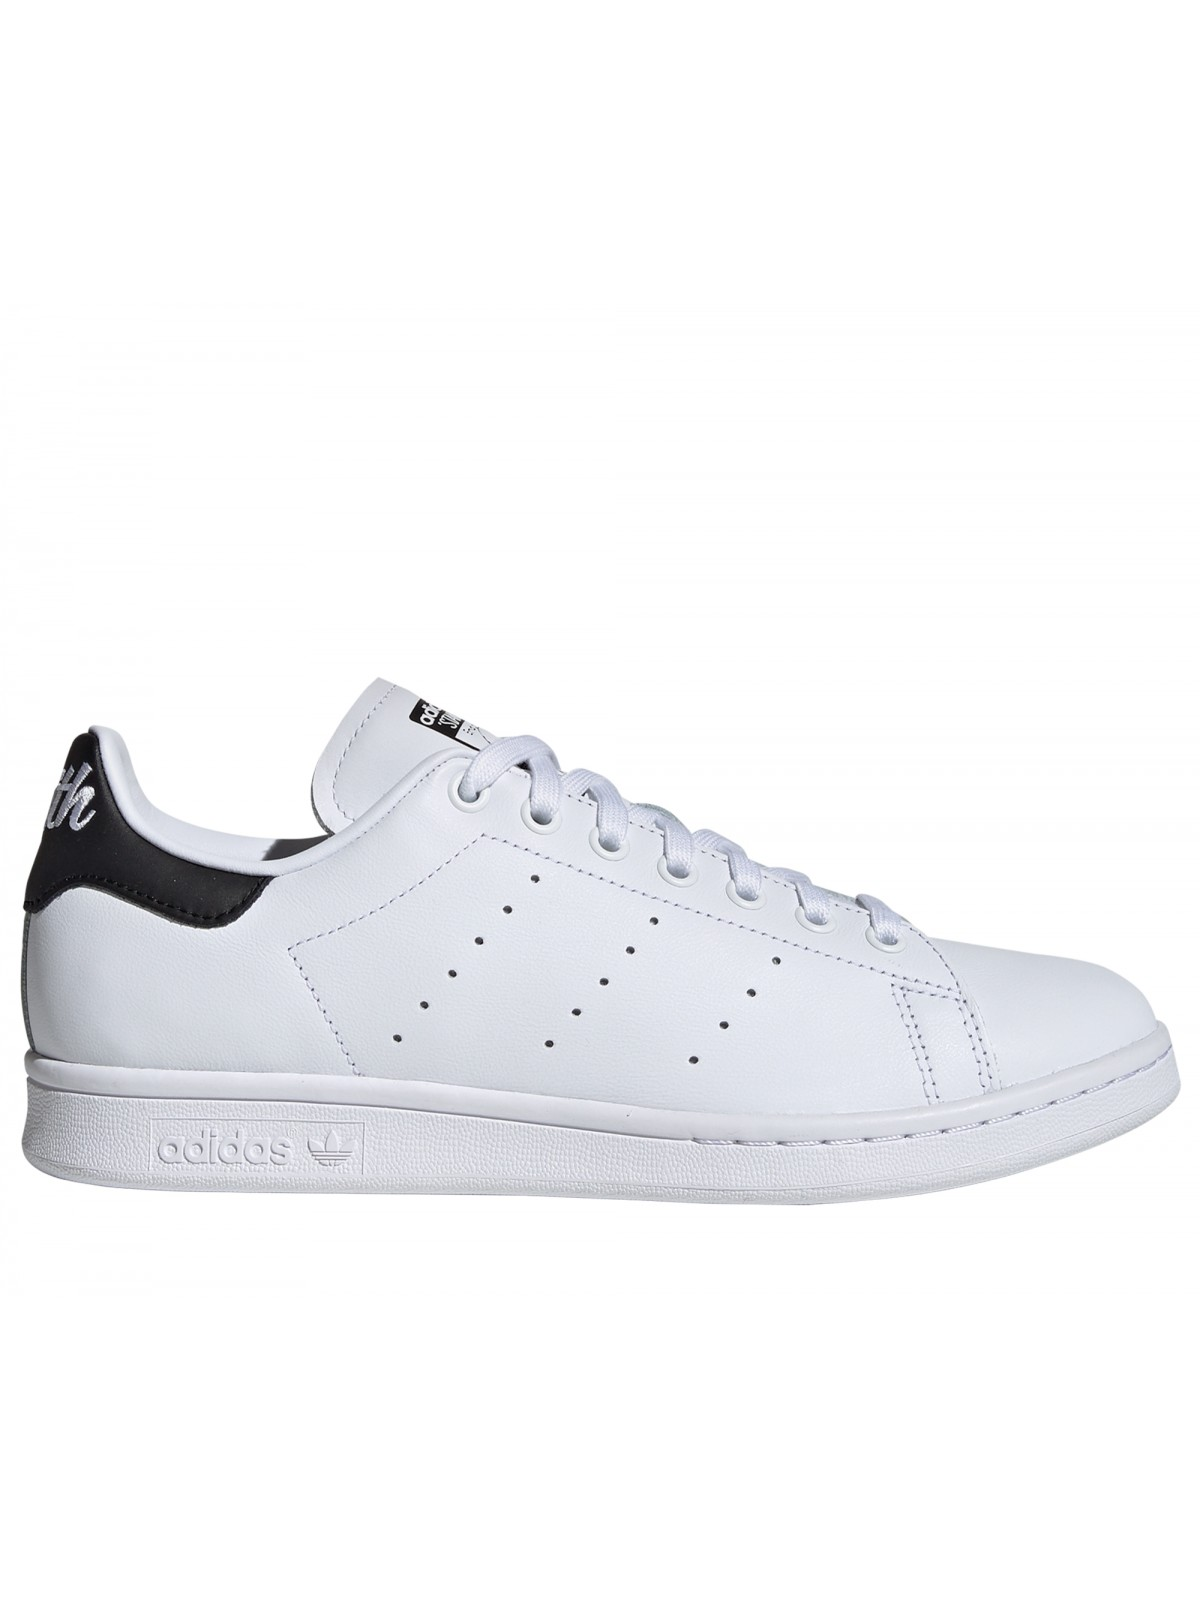 grossiste 245db c0705 ADIDAS Stan Smith Inscription Cuir blanc / noir - Stan smith ...